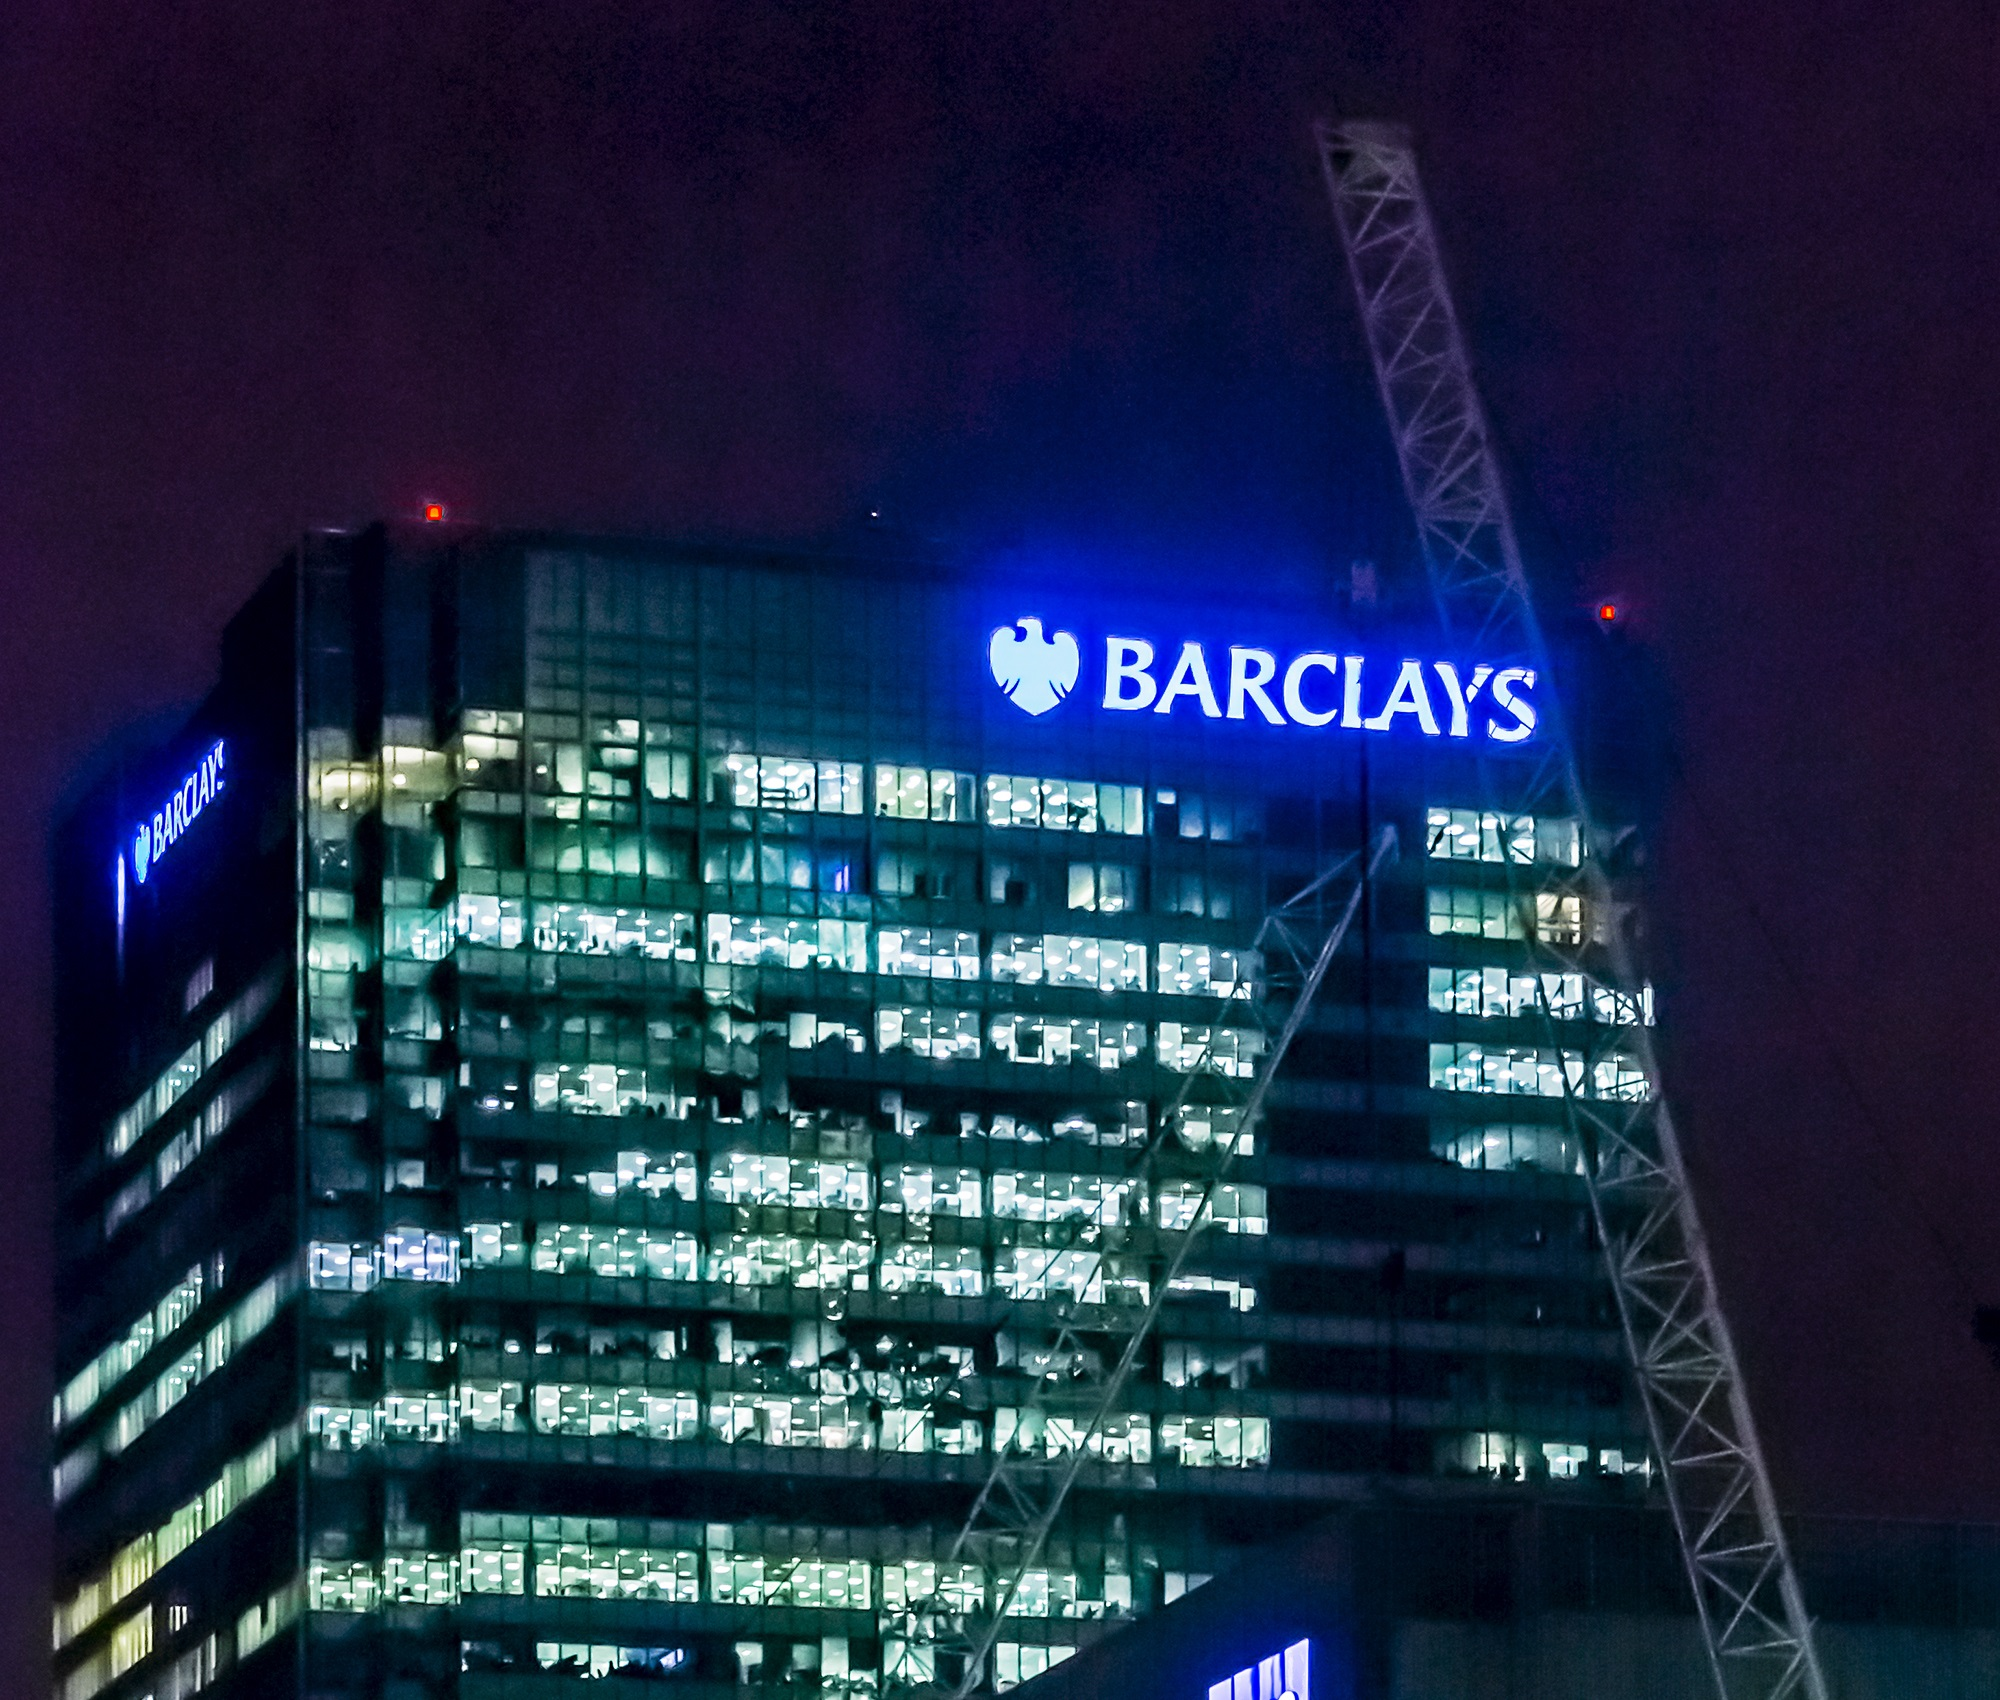 Barclays Customer Data Stolen And Sold For Scammers' Use